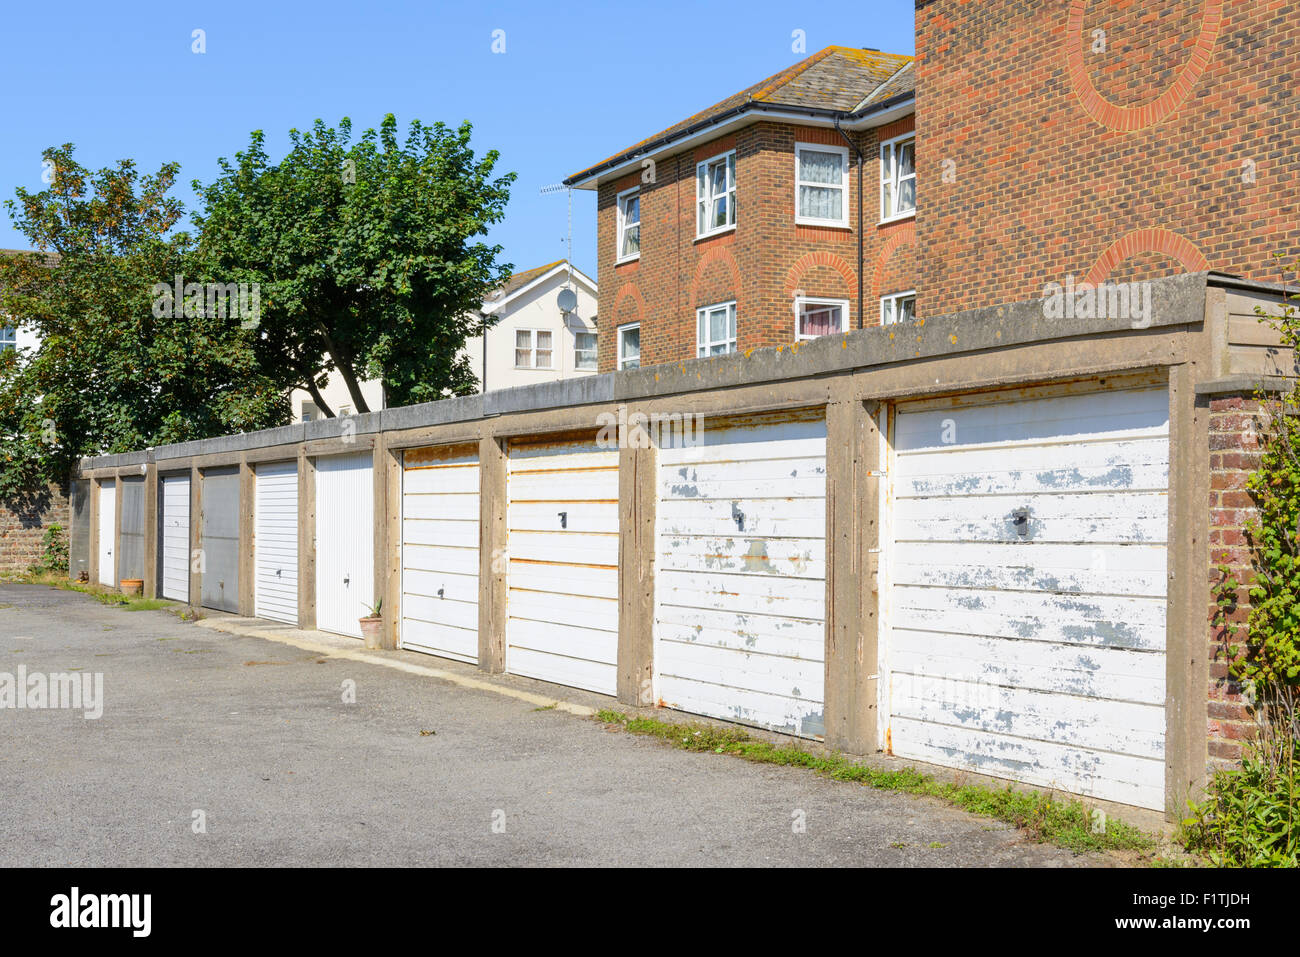 Row of private car garages in England, UK. - Stock Image